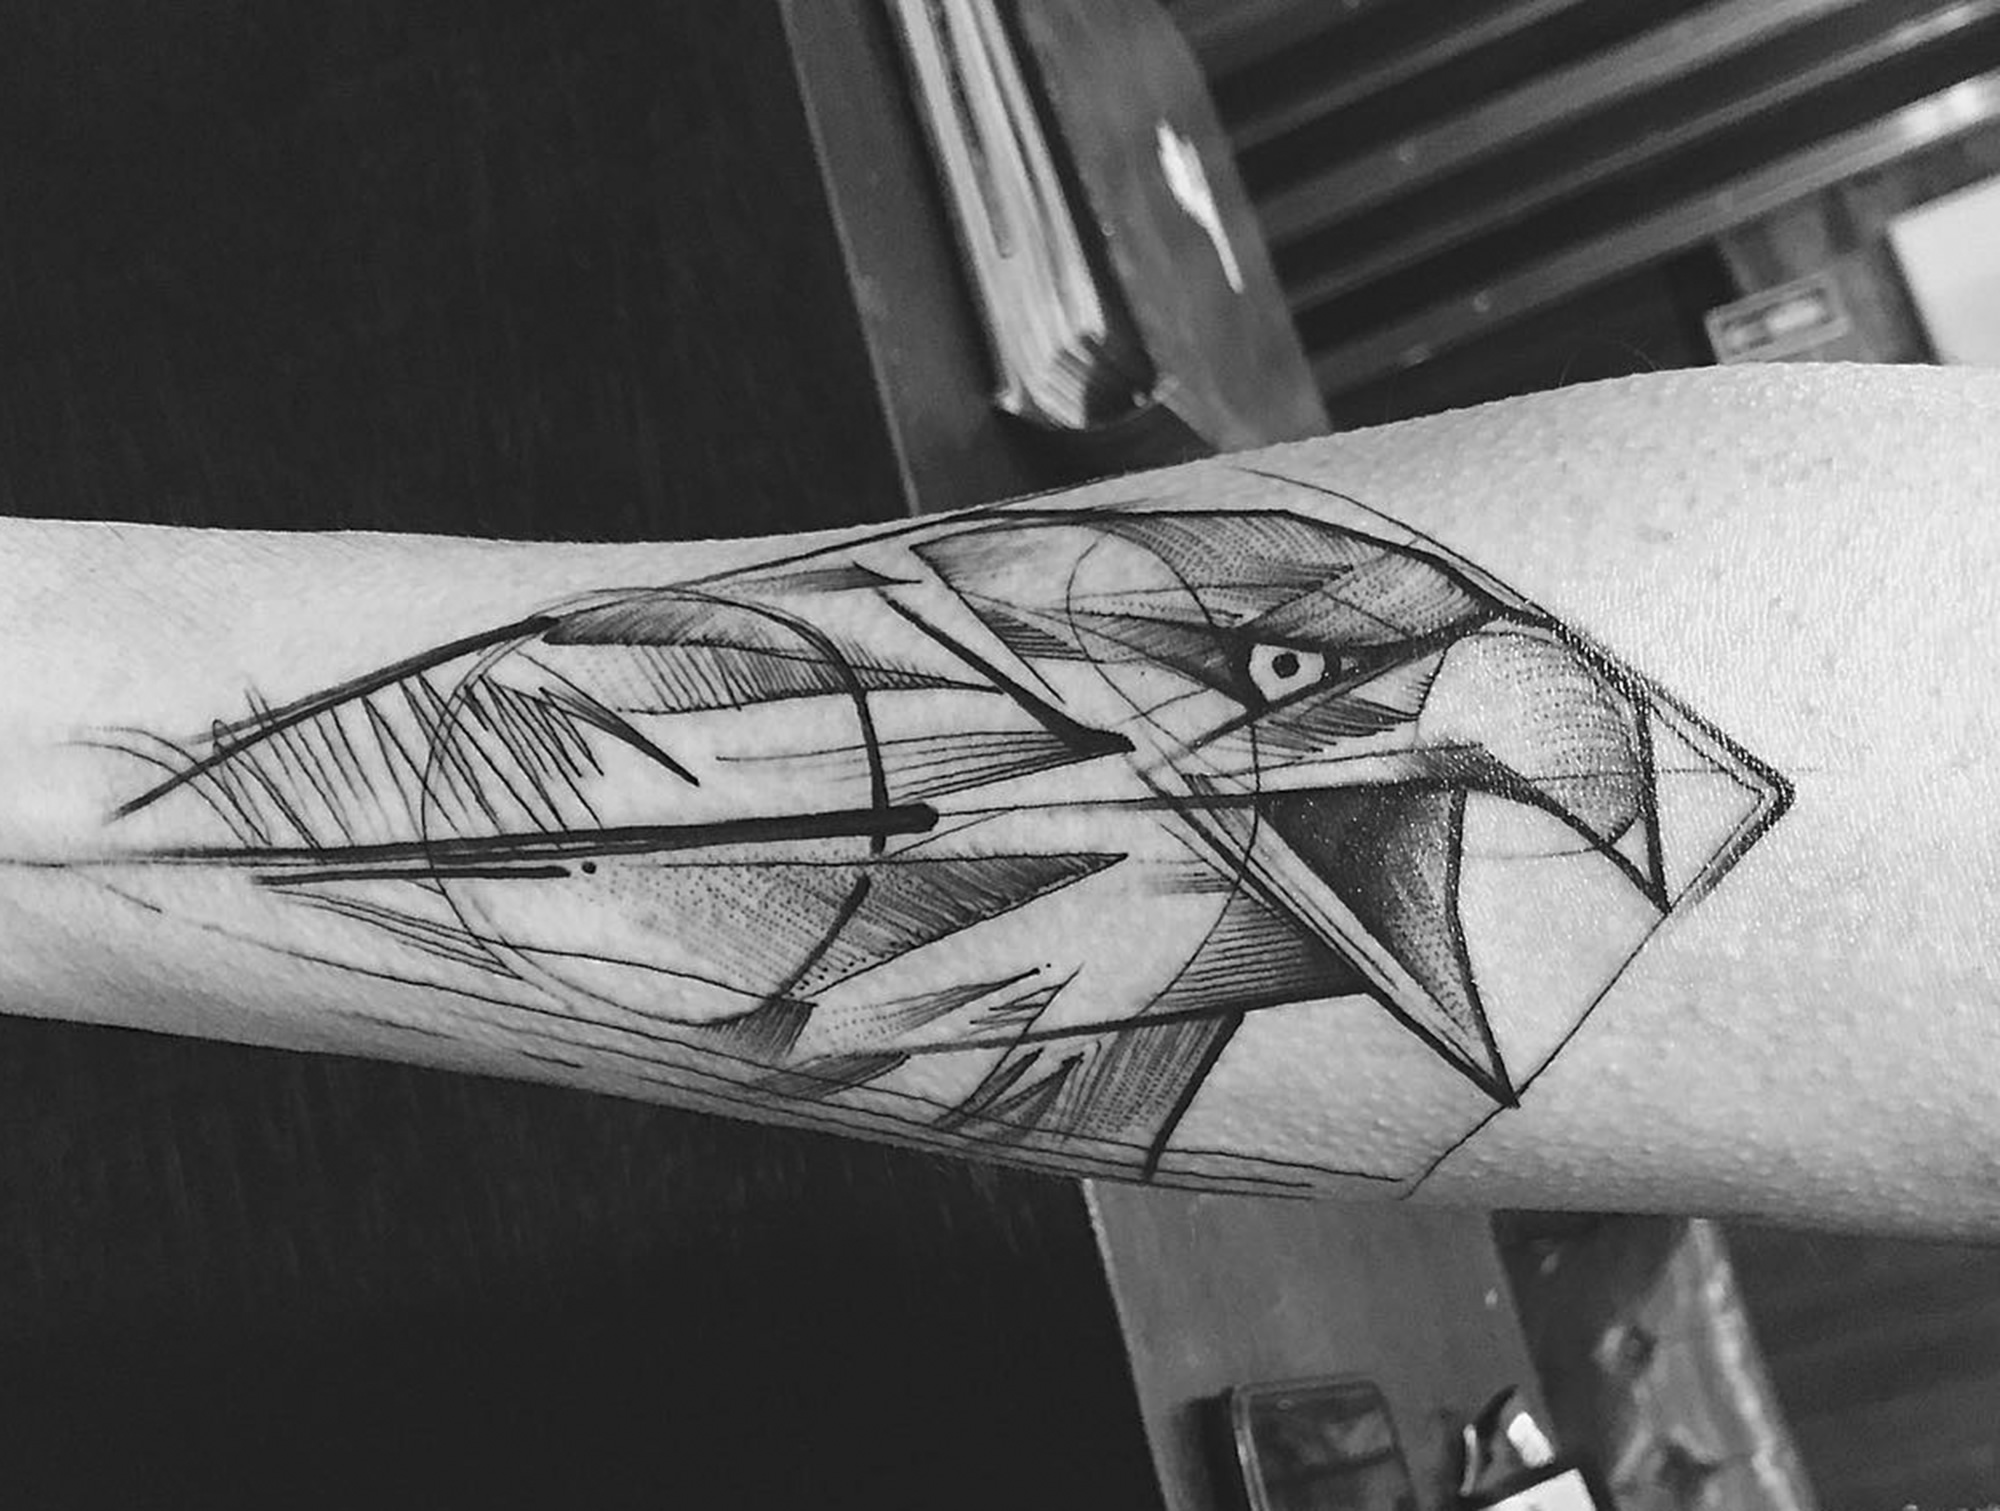 hawk tattoo on arm, linework, black ink